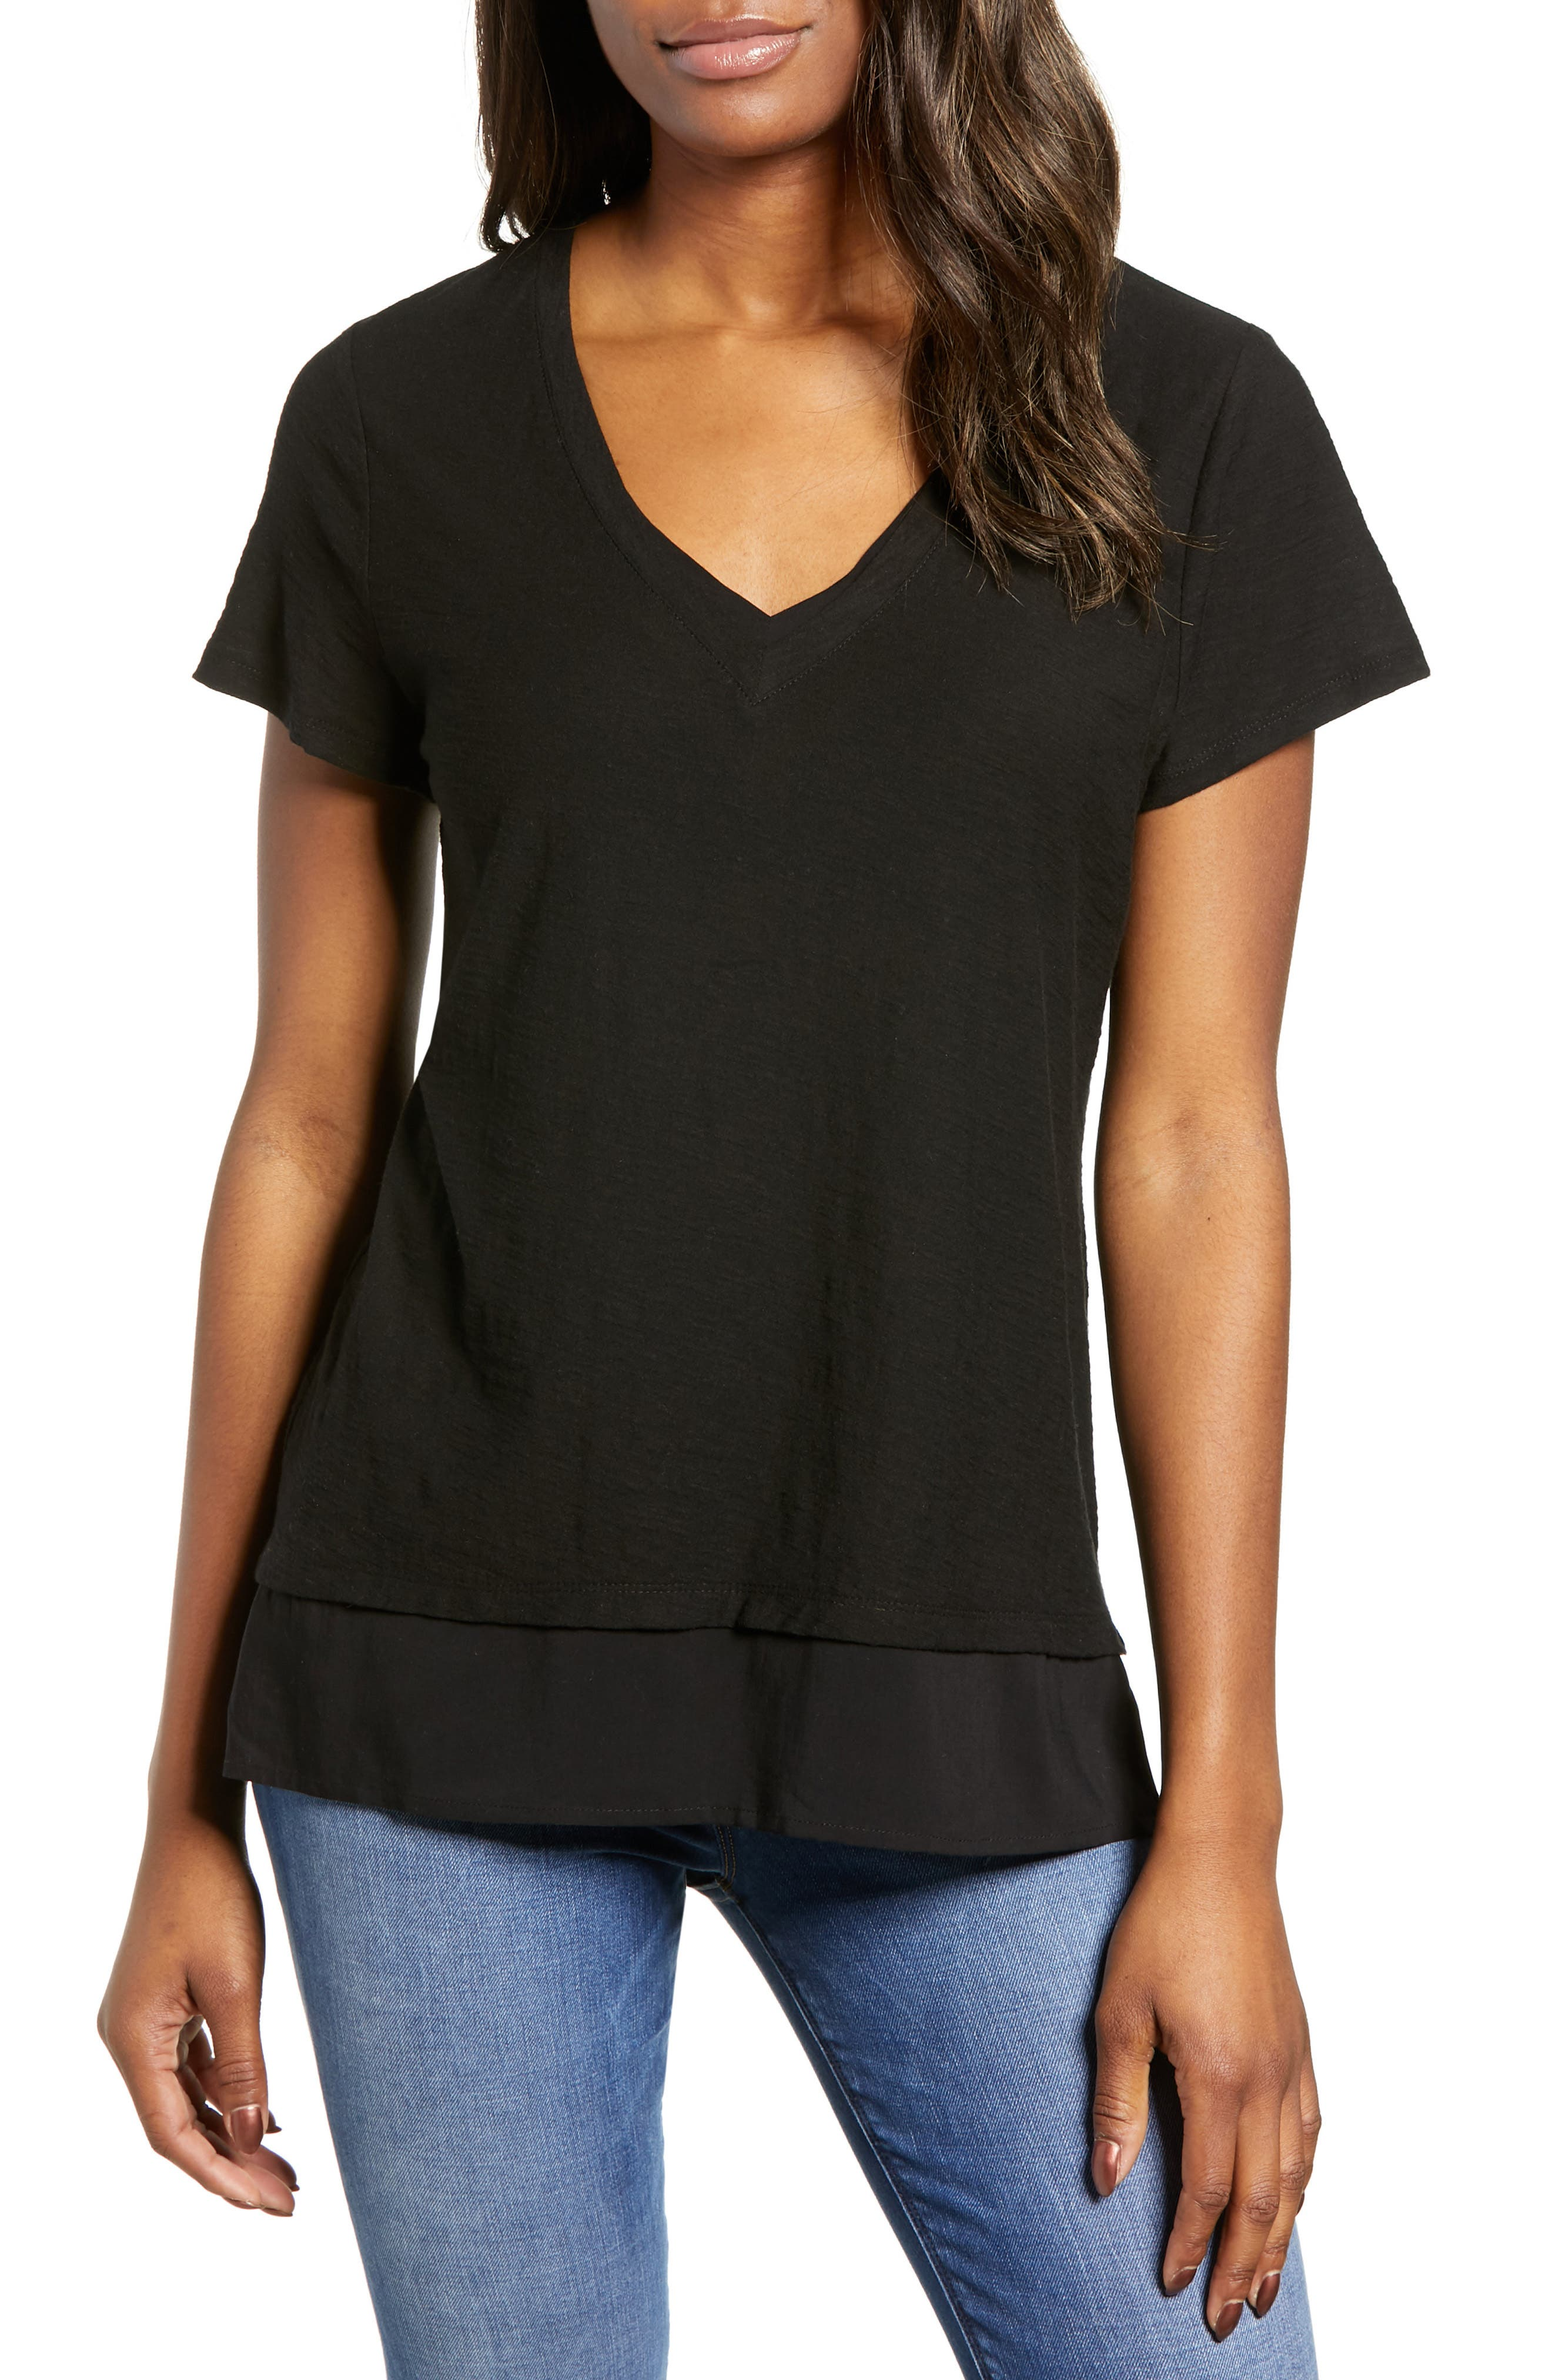 d59430357 Petite Vince Camuto Layered Look V-Neck Tee, Black